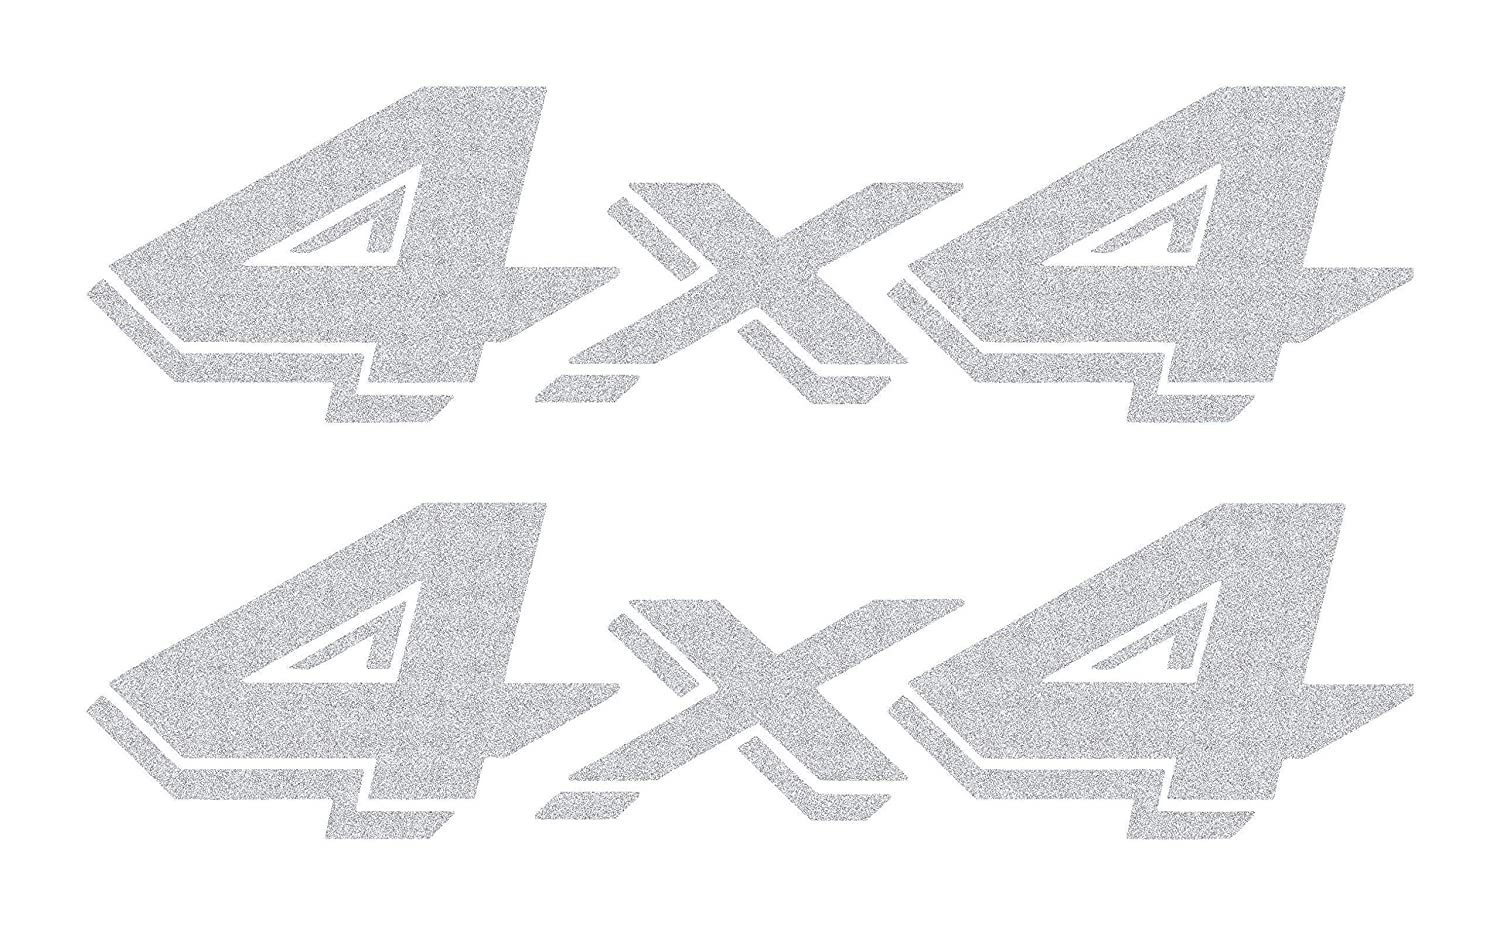 1997-2011 Replacement for Dodge Dakota Style 04 OEM replacement Bedside 4x4 Vinyl Graphic Decals